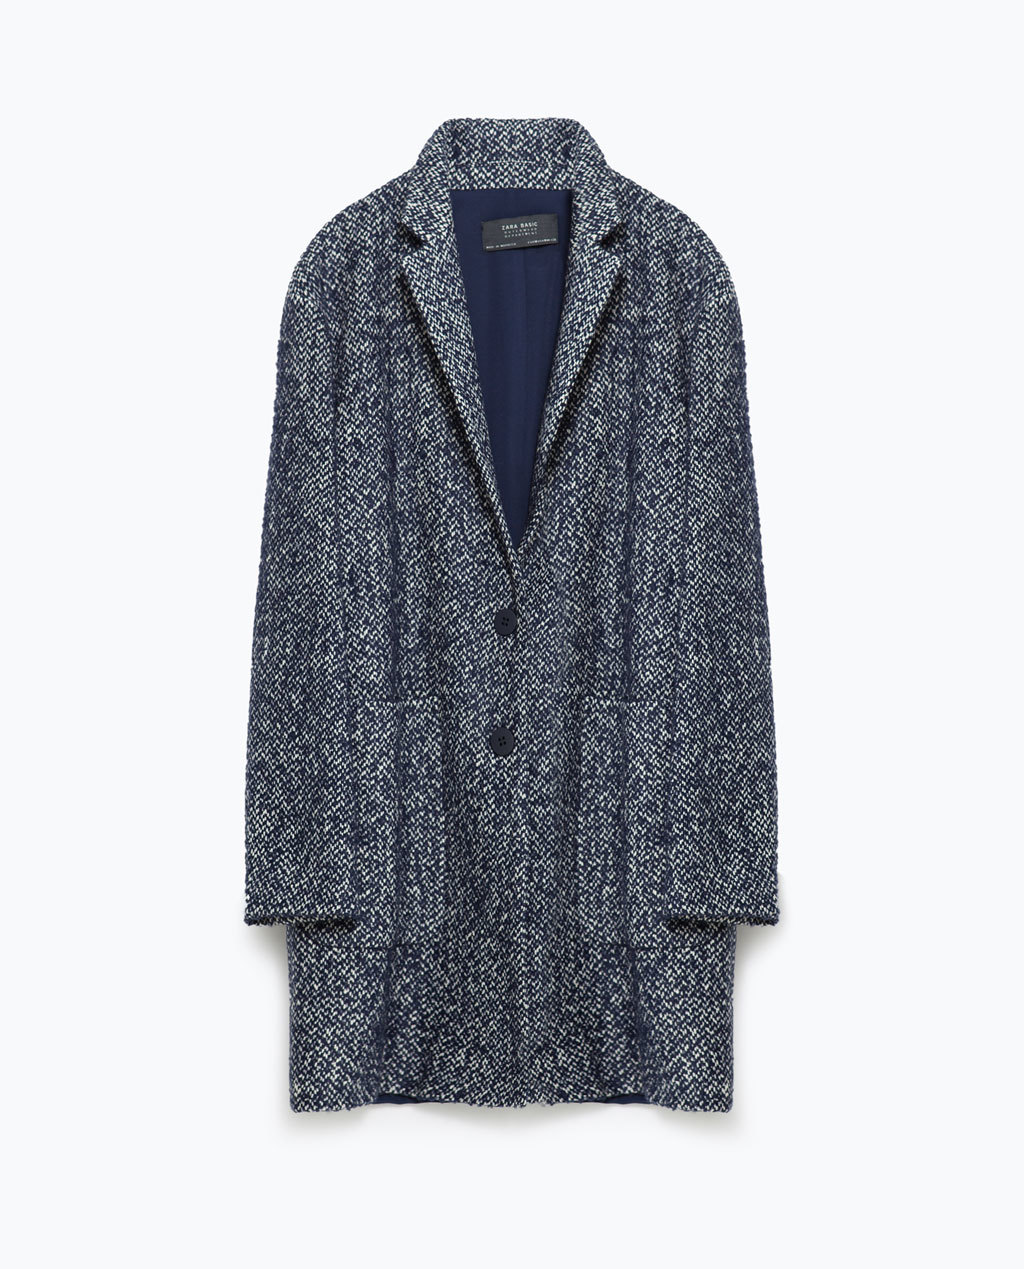 Wool Coat - fit: loose; collar: standard lapel/rever collar; pattern: herringbone/tweed; length: mid thigh; secondary colour: white; predominant colour: navy; occasions: casual, creative work; style: cocoon; fibres: wool - 100%; sleeve length: long sleeve; sleeve style: standard; collar break: medium; pattern type: fabric; pattern size: standard; texture group: tweed - bulky/heavy; season: a/w 2015; wardrobe: basic